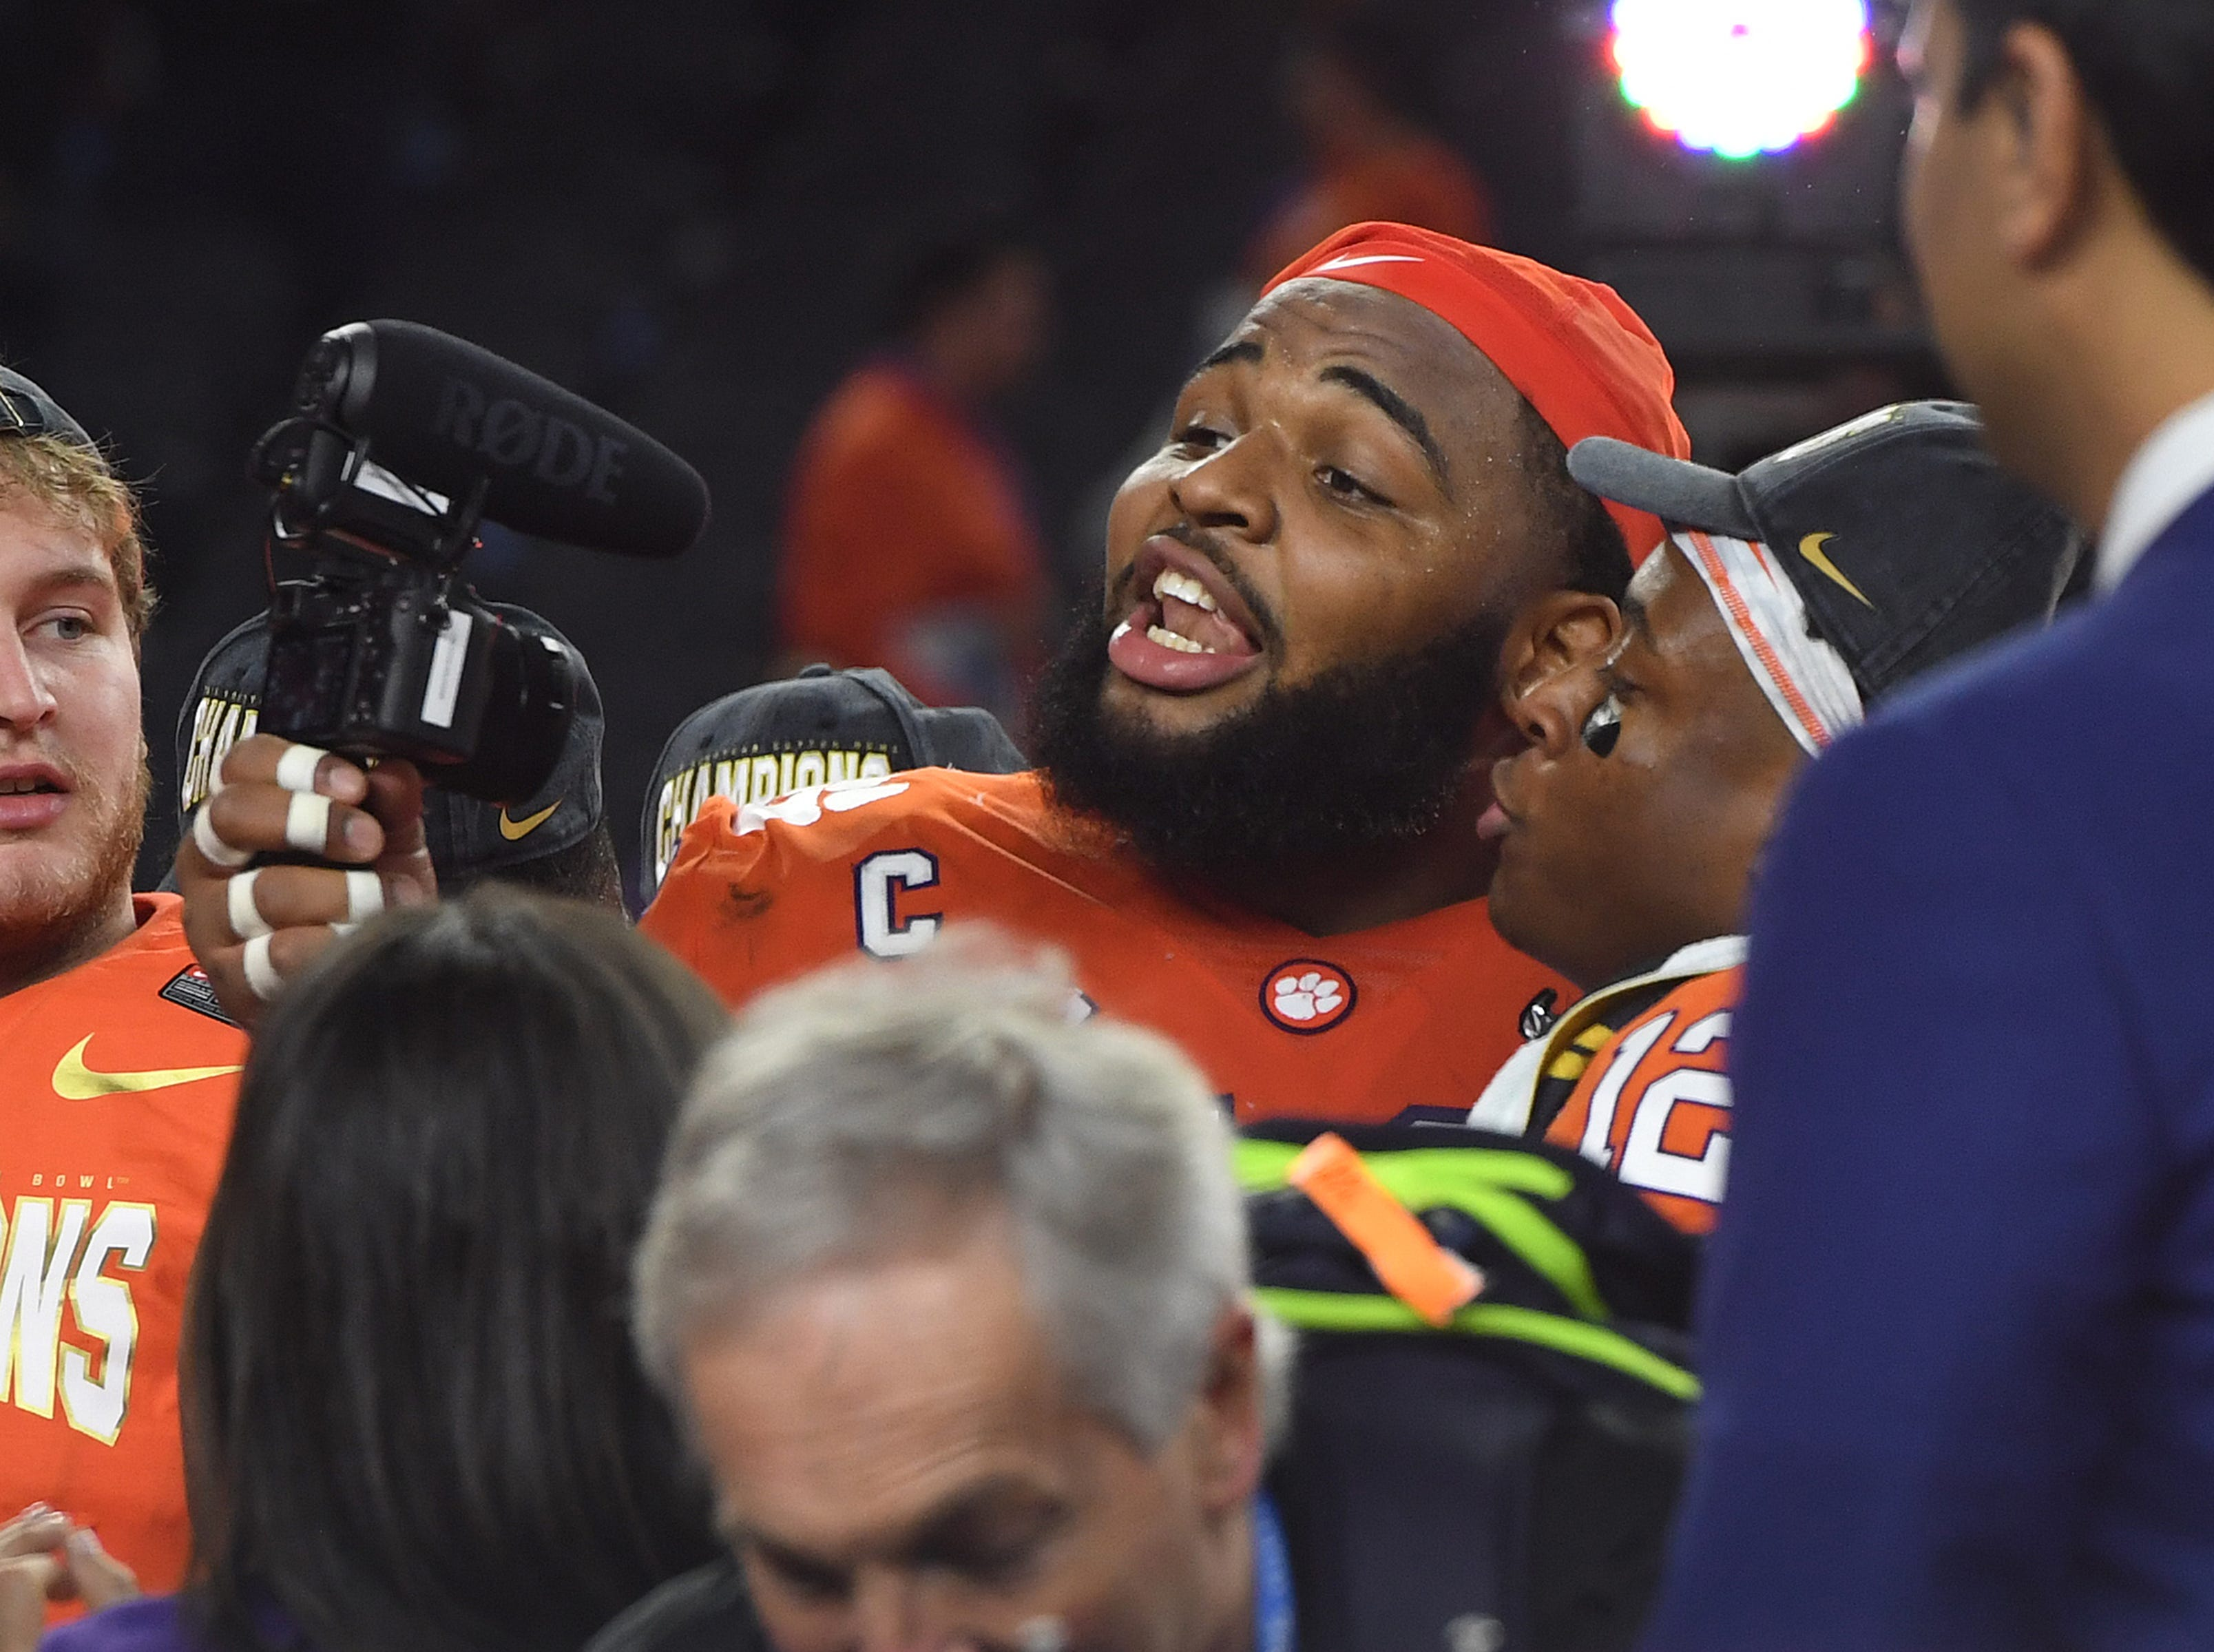 Clemson defensive lineman Christian Wilkins (42) celebrates after the Tigers 30-3 win over Notre Dame in the Goodyear Cotton Bowl at AT&T stadium in Arlington, TX Saturday, December 29, 2018.